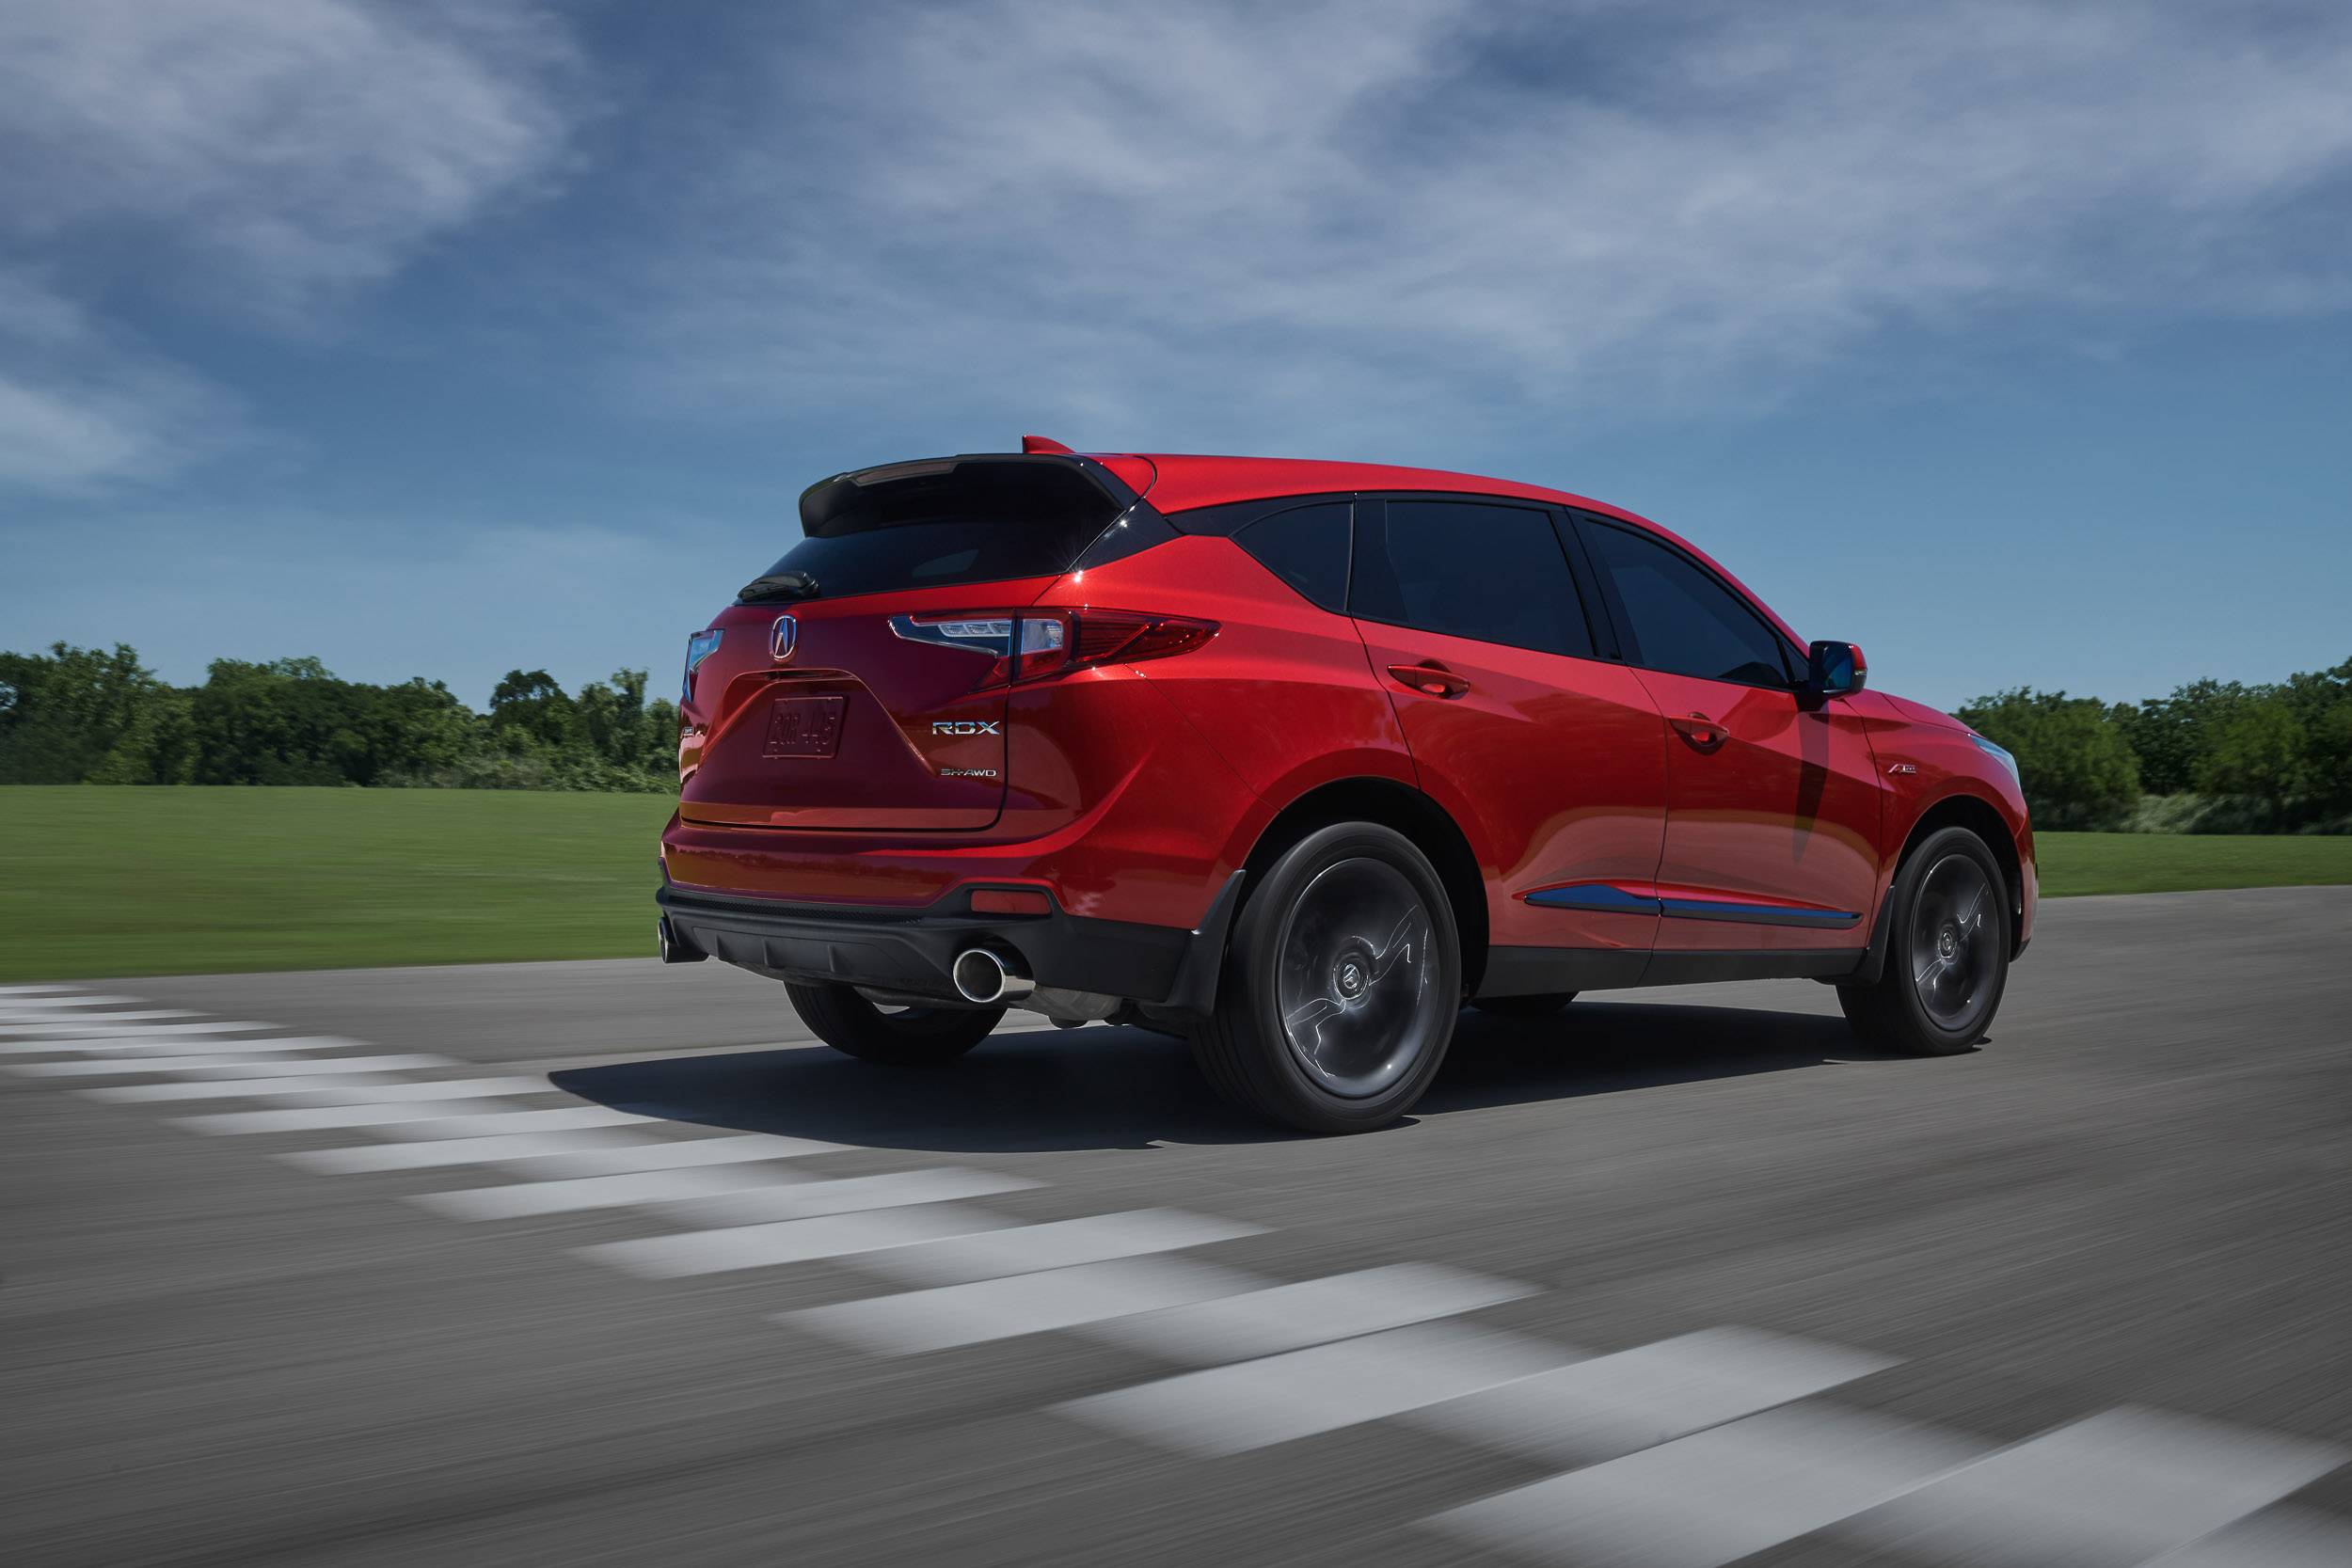 201904-BJP-Acura-day03-rdx-ext-004292-2